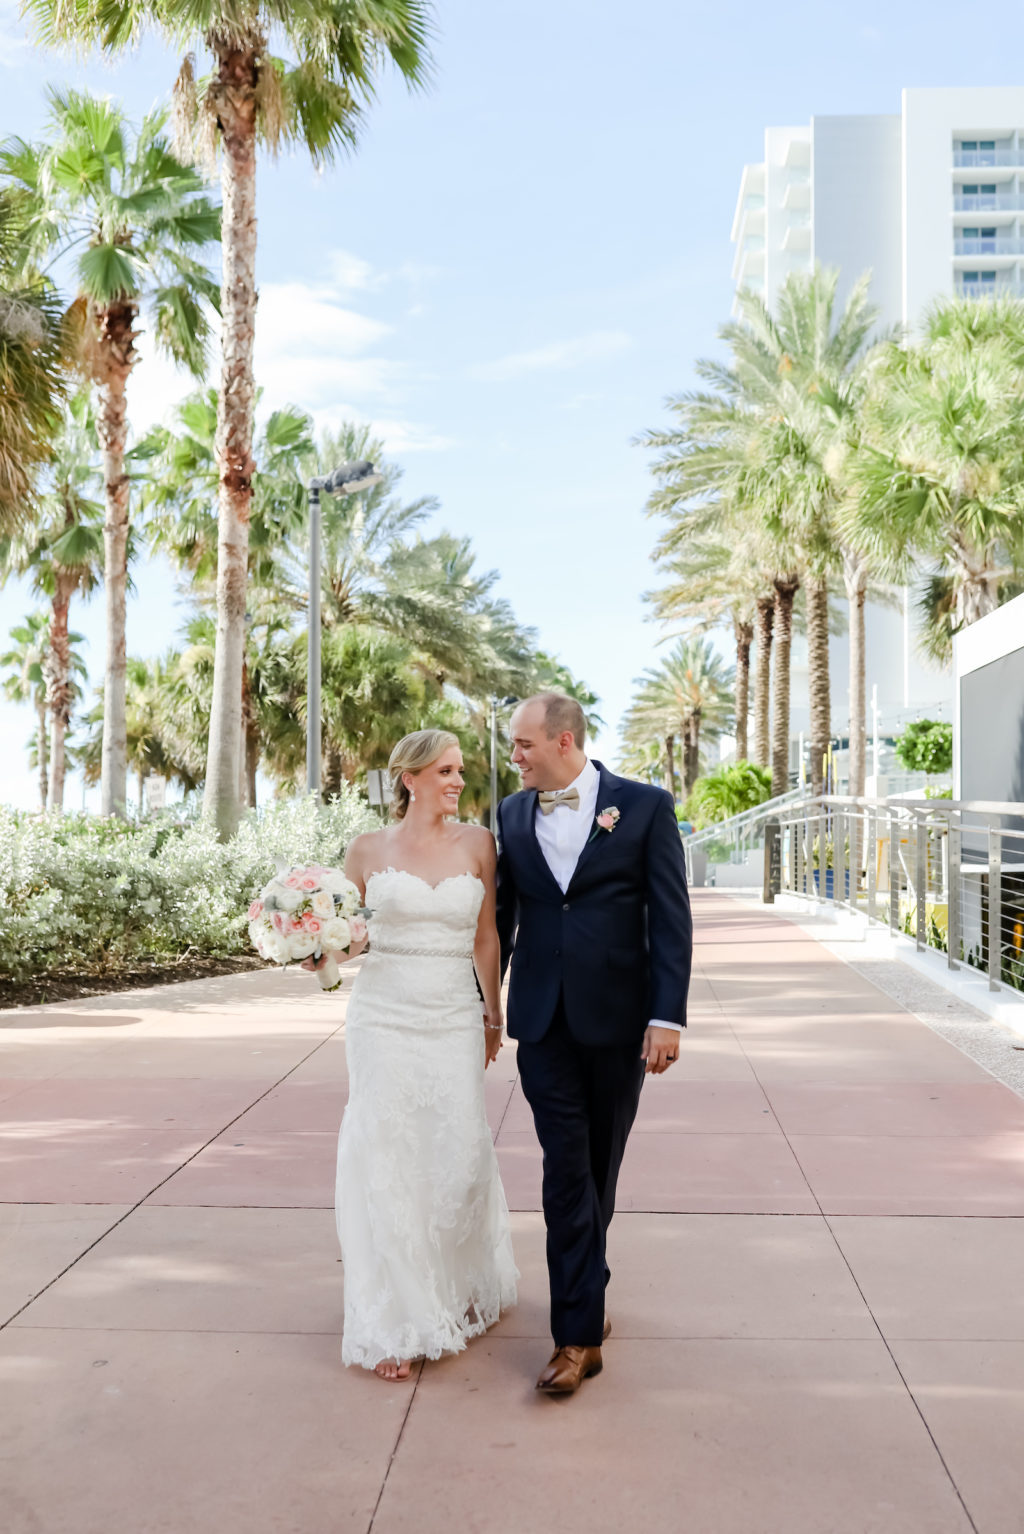 Bride and Groom Outdoor Portrait at Clearwater Beach Wedding | Bridal Gown Hanger Shot | Strapless Sweetheart Lace A Line Wedding Dress with Rhinestone Waistband | Blush Pink and White Rose Bouquet | Groom in Classic Navy Blue Suit with Champagne Bow Tie | Lifelong Photography Studios